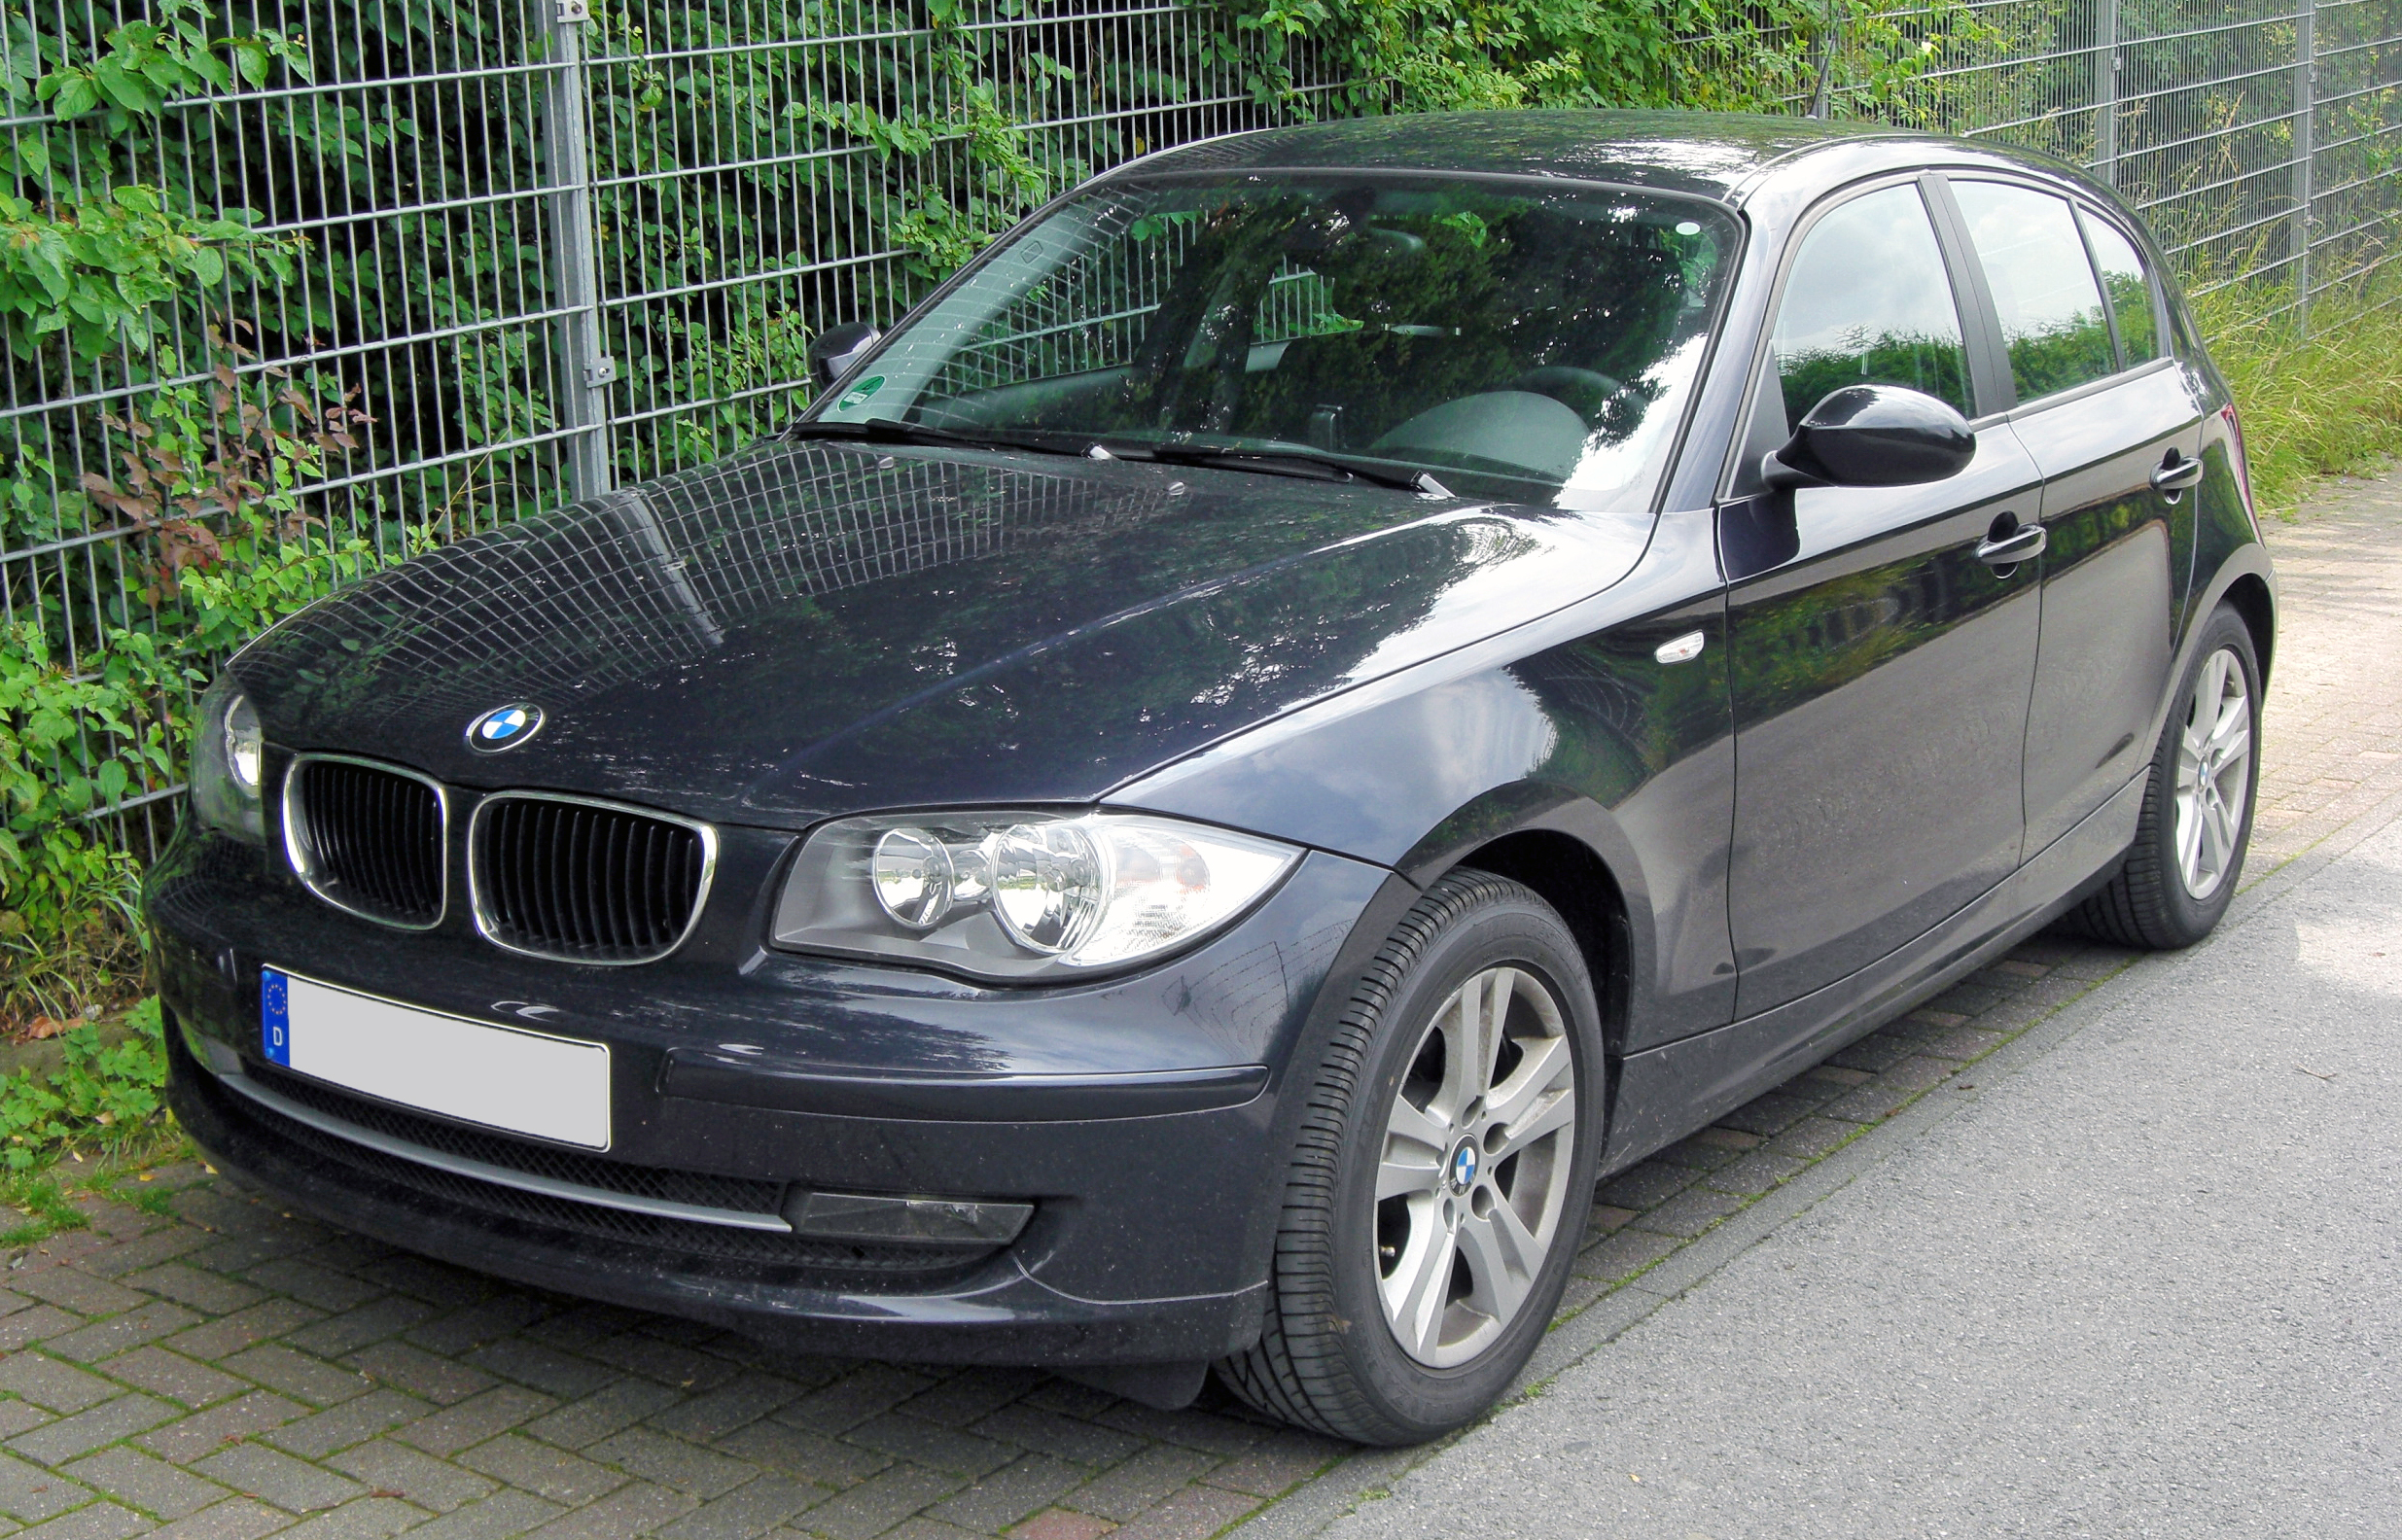 file bmw 118d facelift 20090628 front jpg wikimedia commons. Black Bedroom Furniture Sets. Home Design Ideas